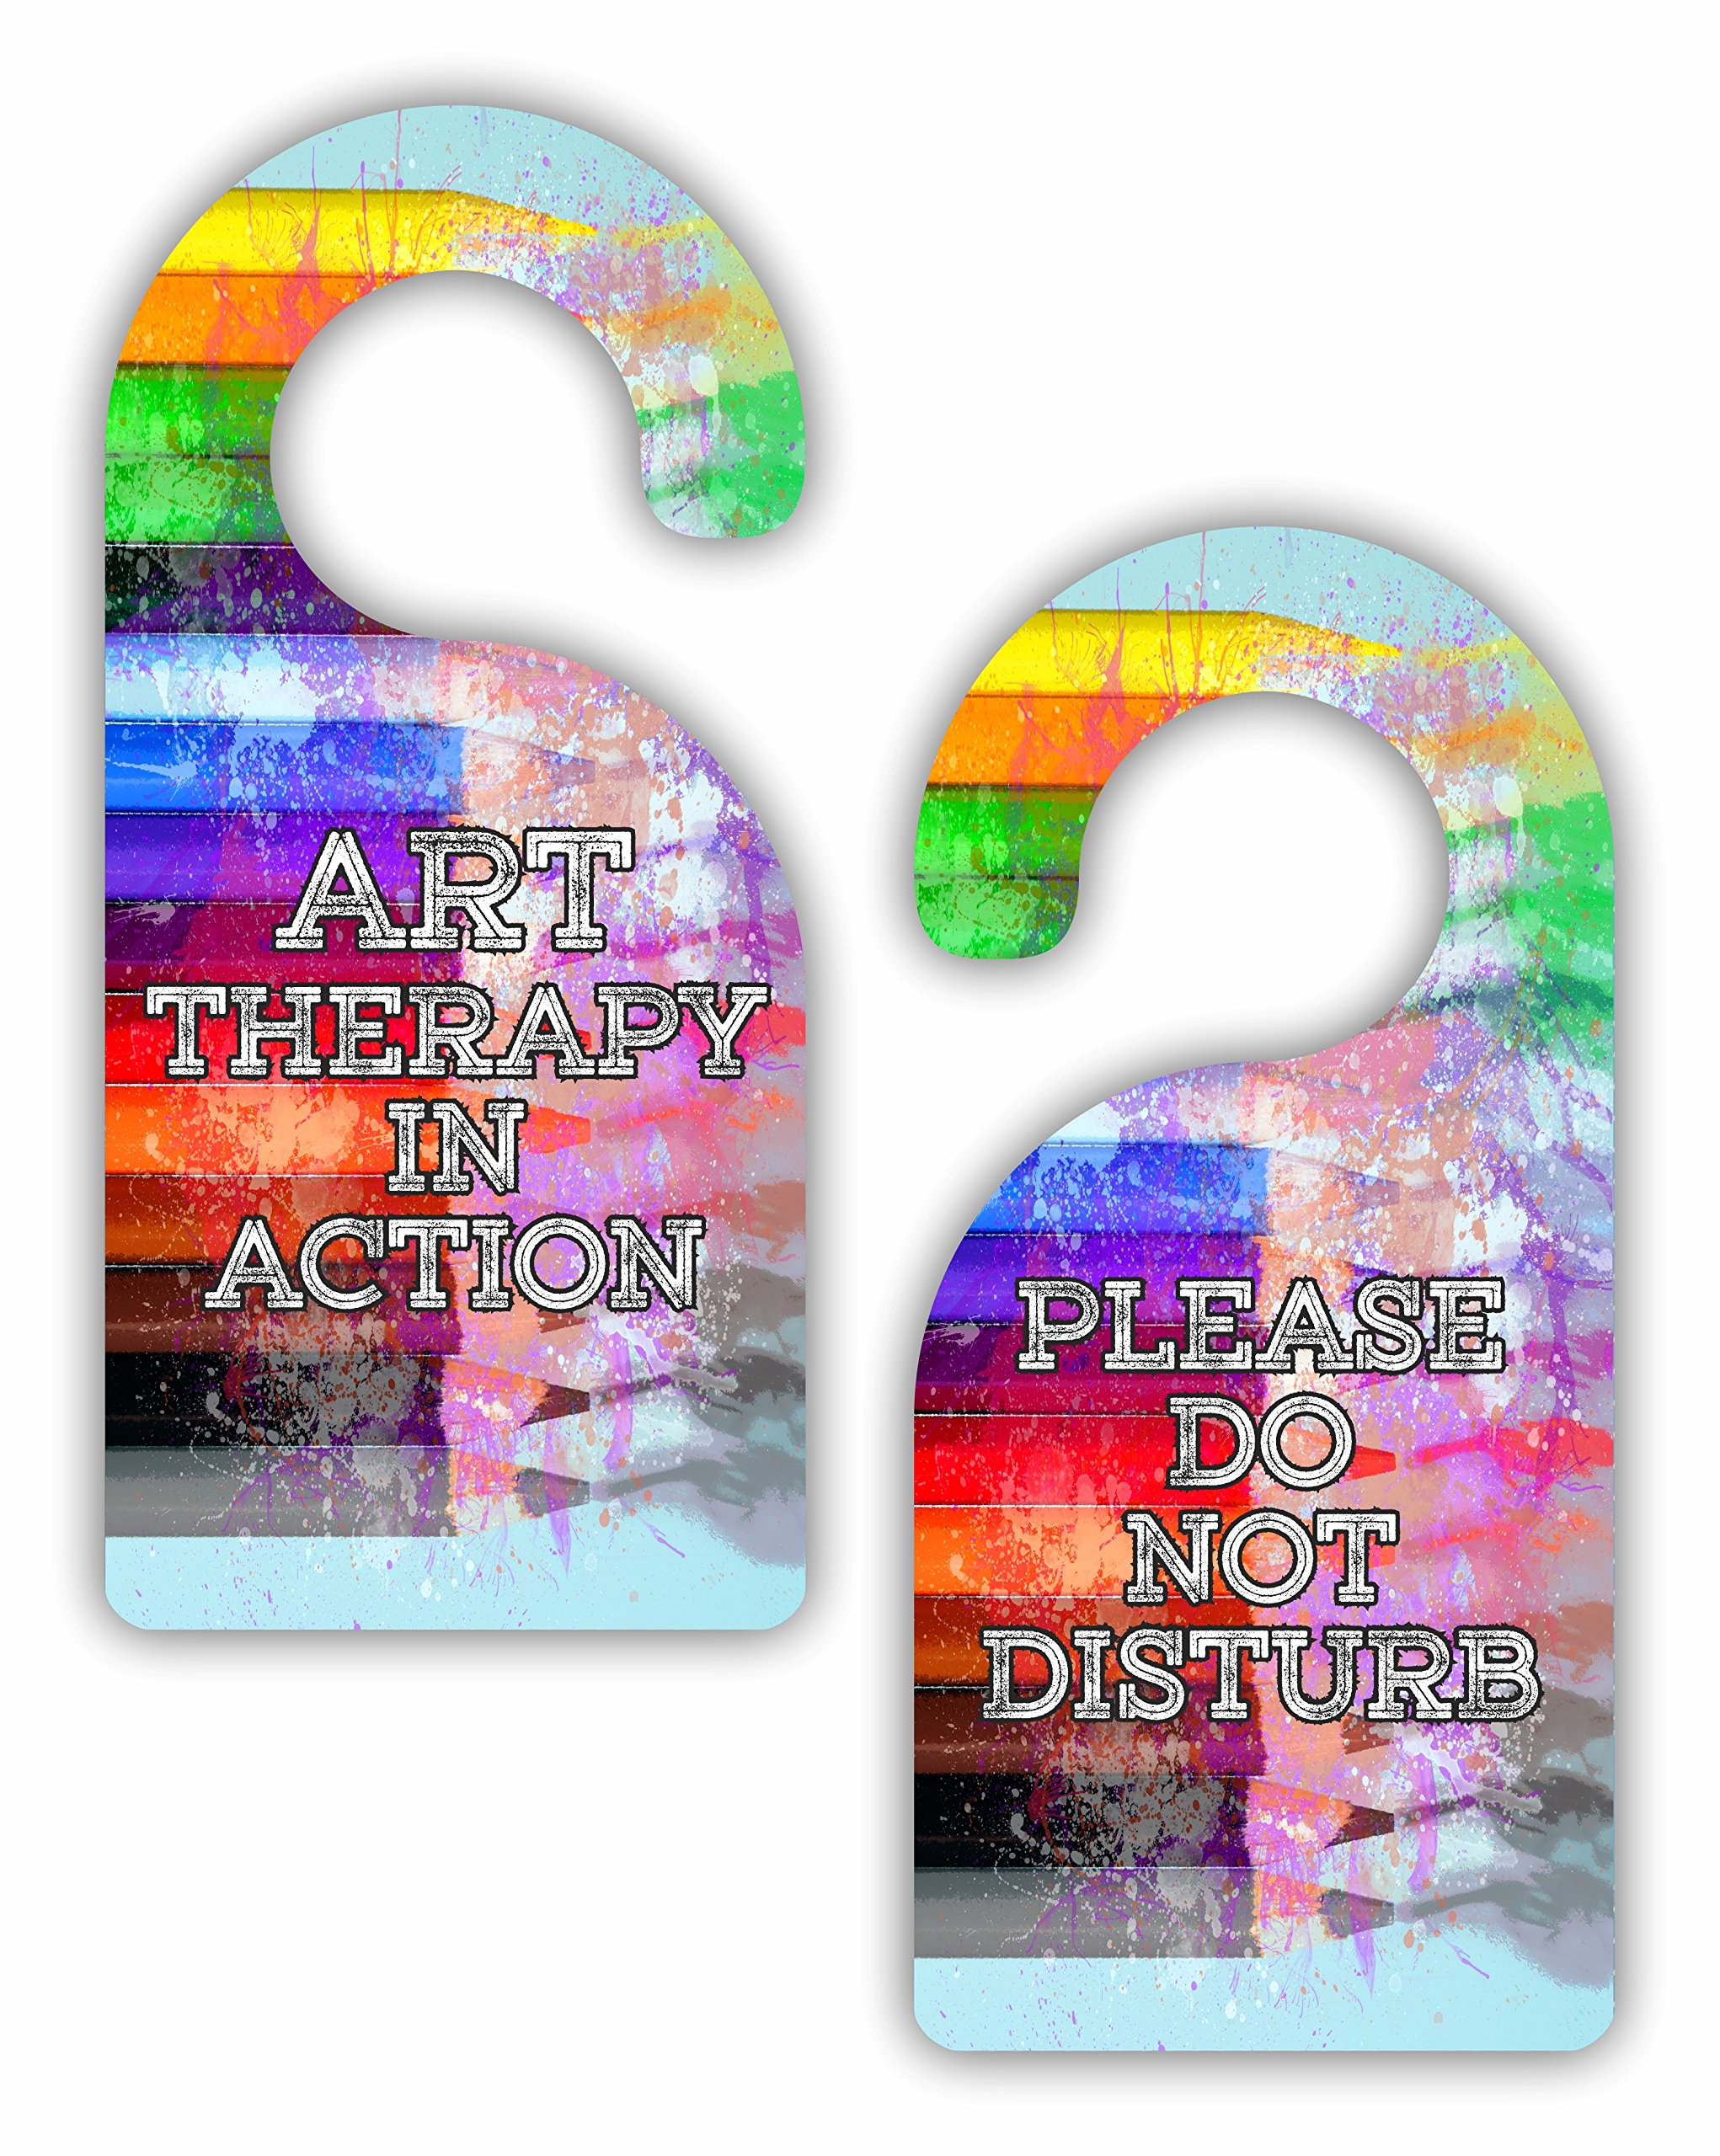 Art Therapy in Action/Please Do Not Disturb - Multicolored Watercolor Colored Pencils Art Print Design - Double-Sided Hard Plastic Glossy Door Hanger